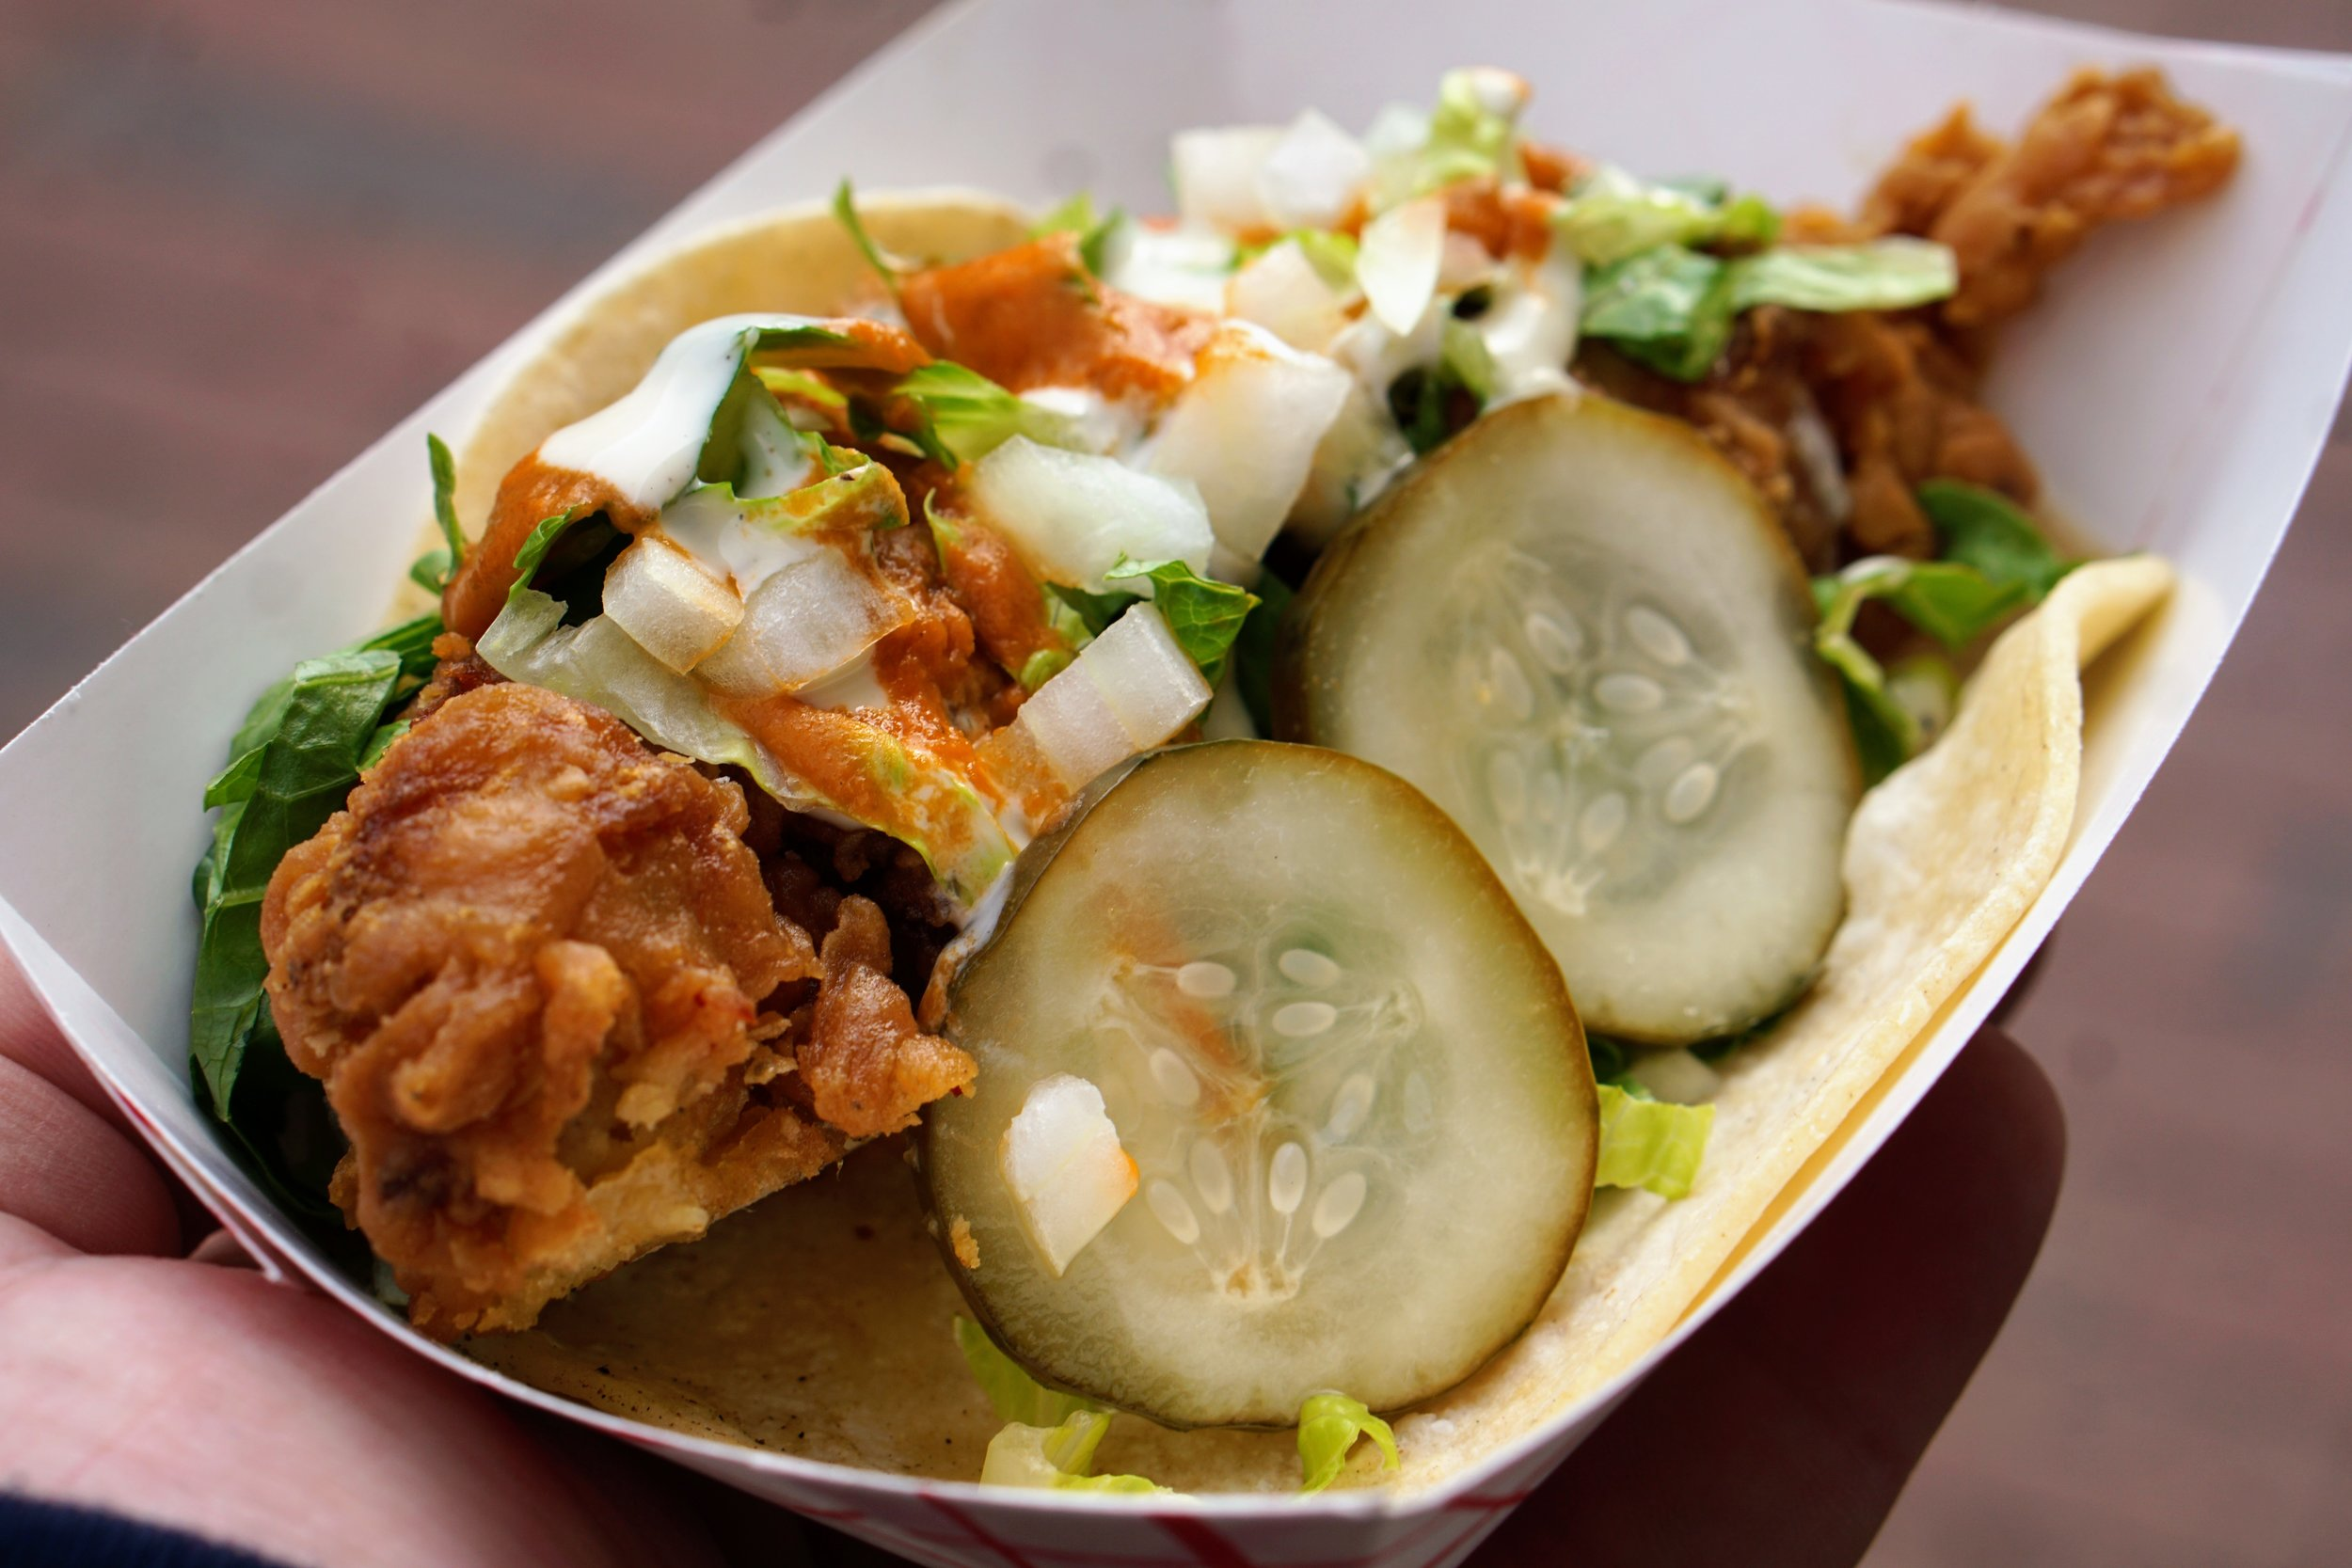 Revolution Taco Food Truck, 33rd Street Hospitality, Nashville Friend Chicken Taco